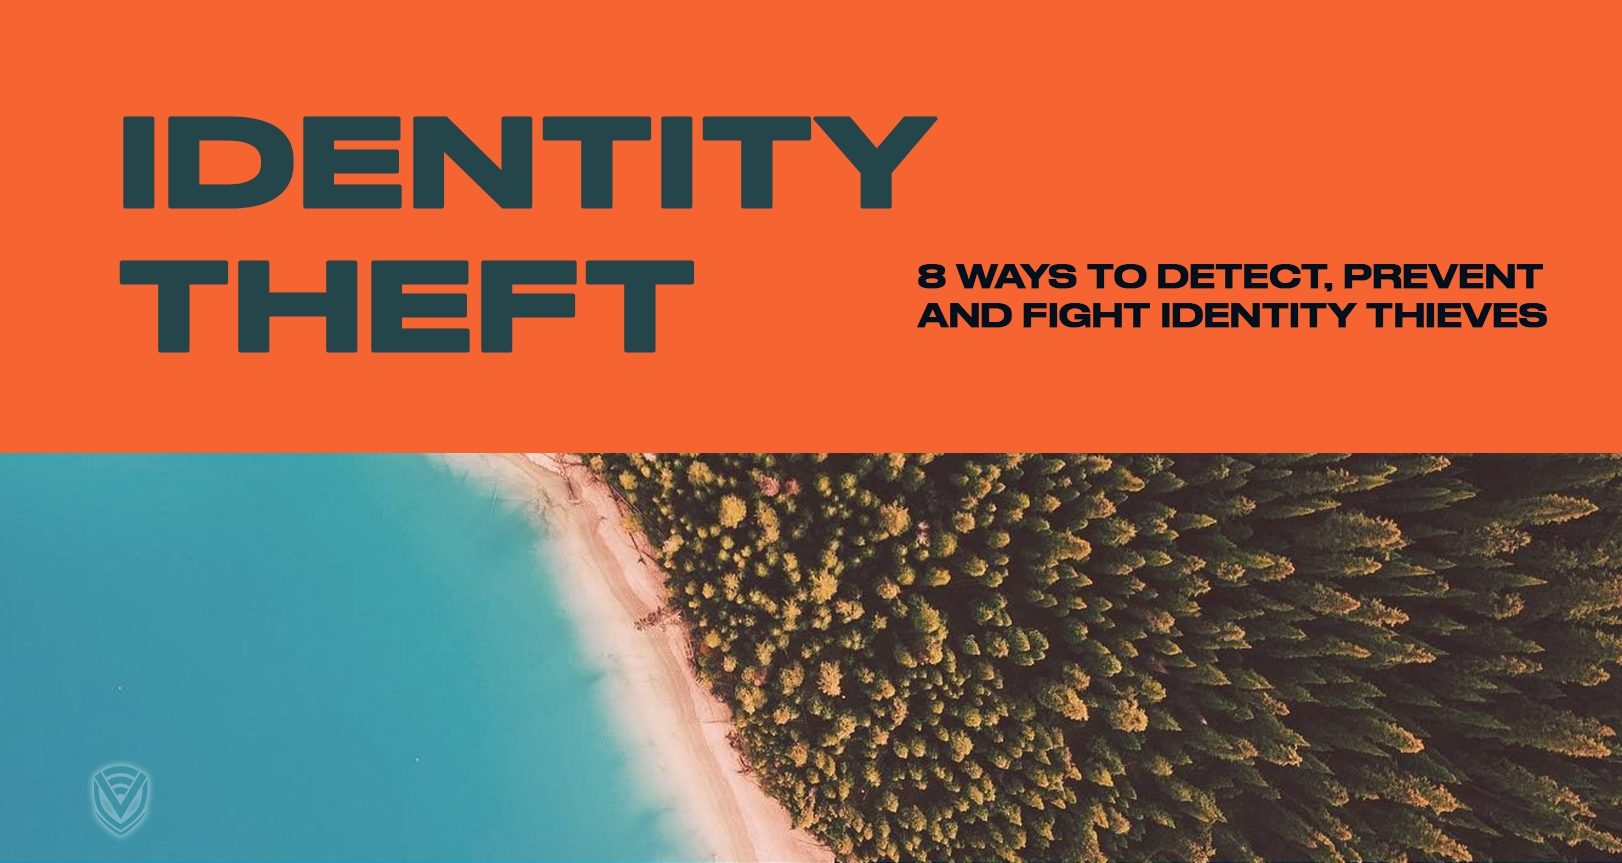 8 Ways On How To Prevent Identity Theft, Detect And Fight It Before Even Happening